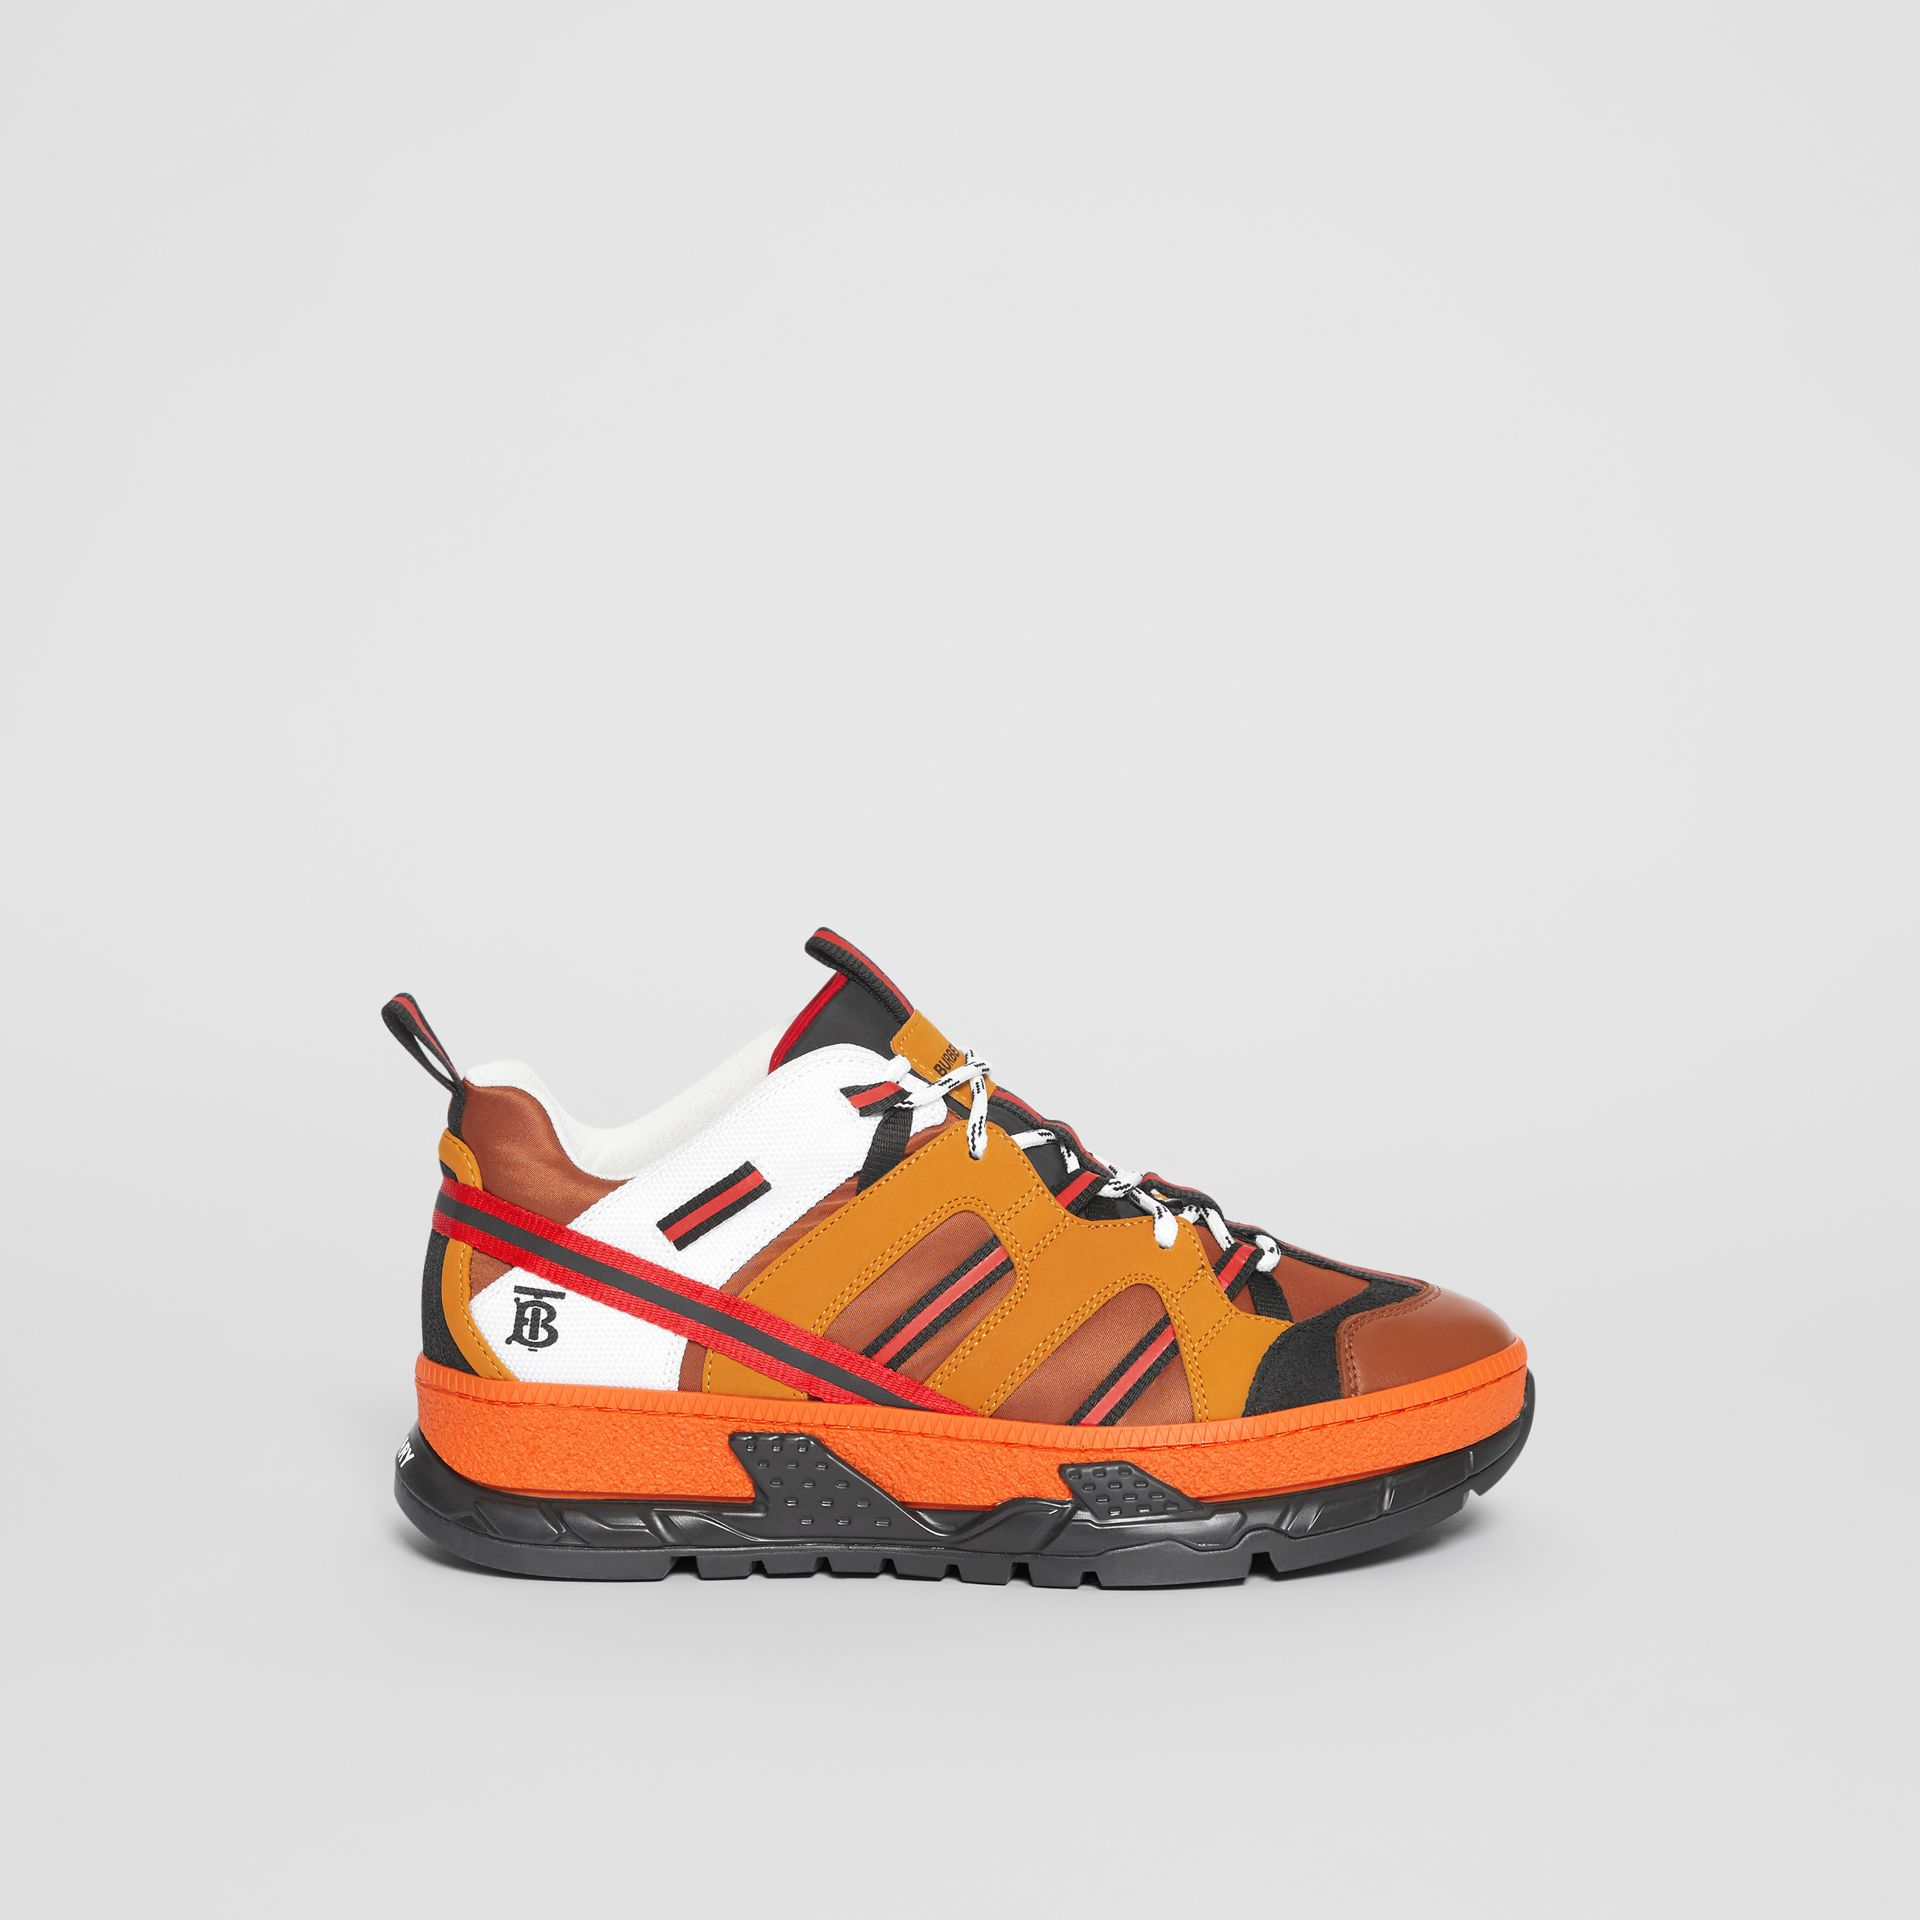 Nylon and Nubuck Union Sneakers in Orange - Men | Burberry United States - gallery image 5